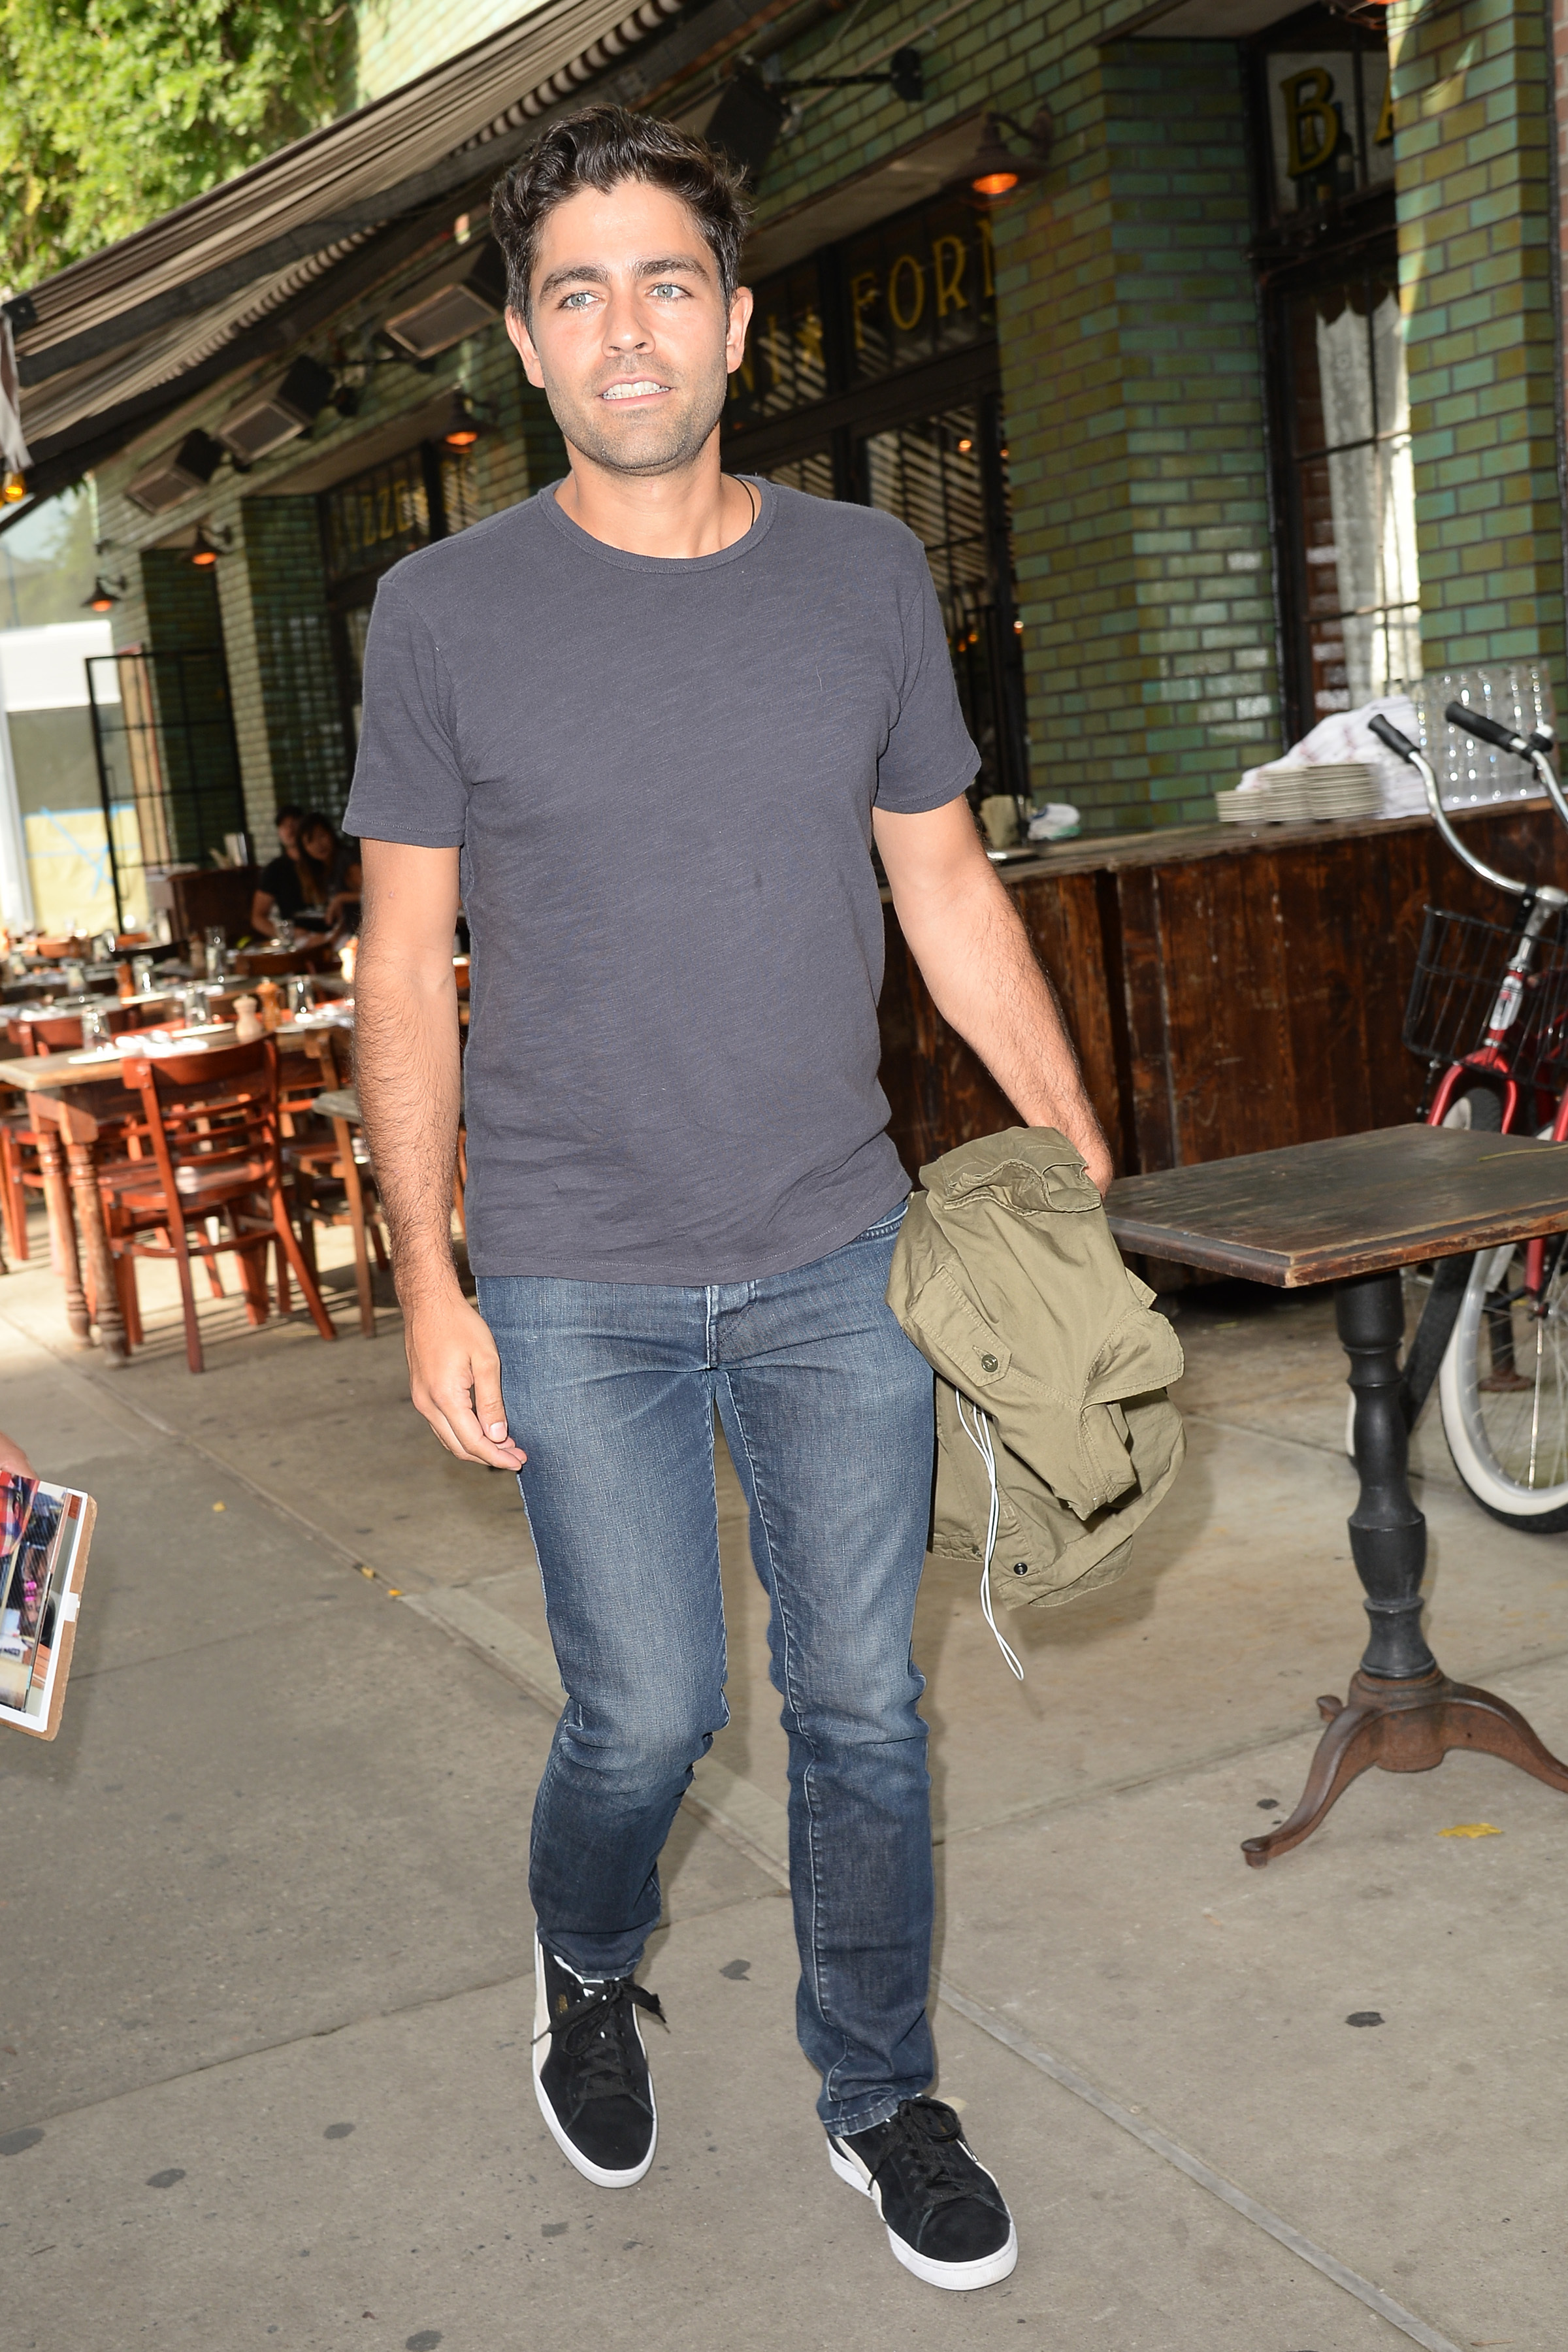 Adrian Grenier is spotted out and about in New York City on Aug. 8, 2017.